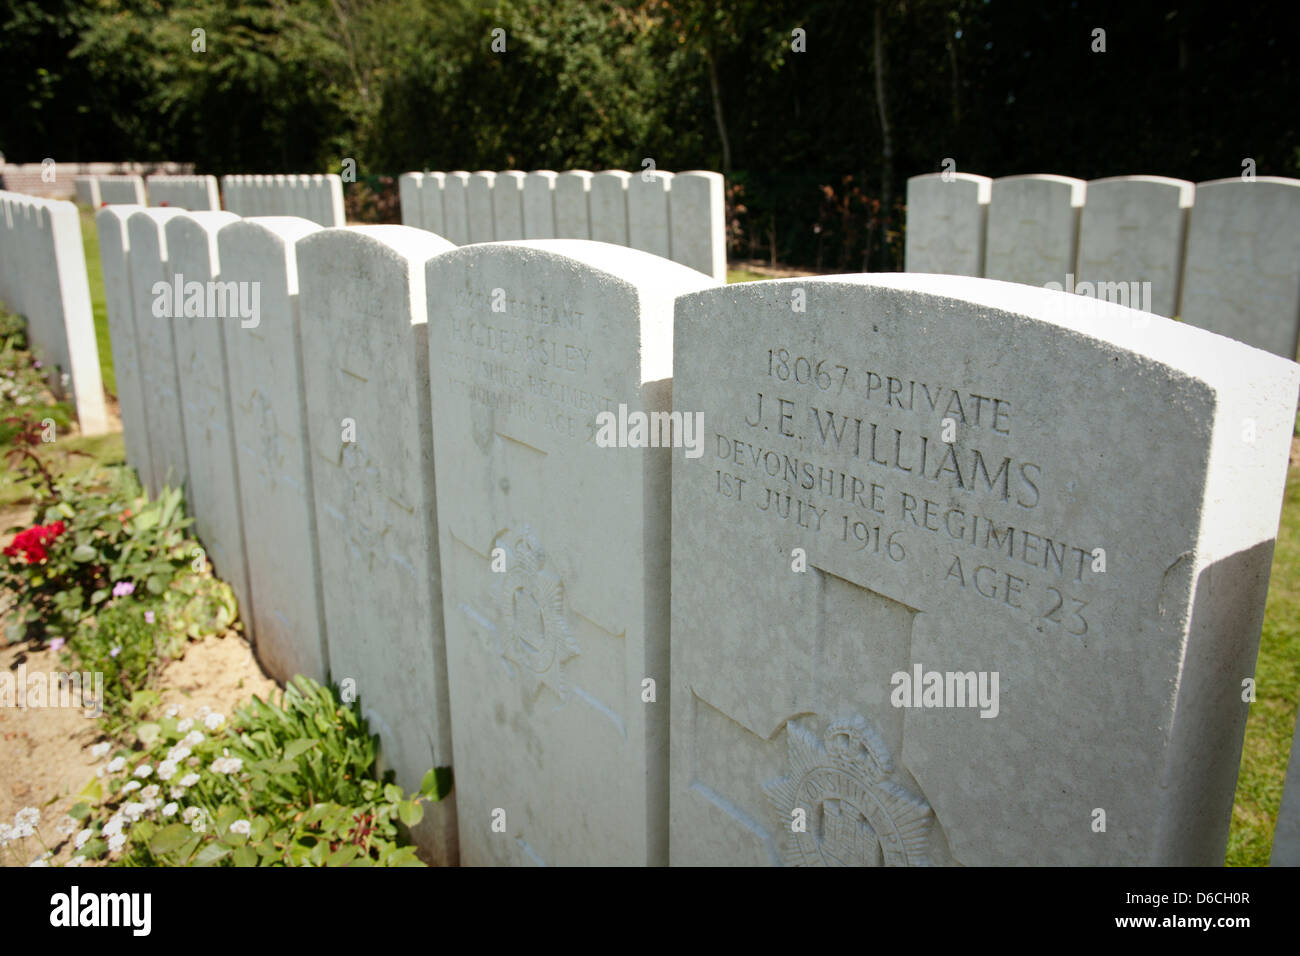 Headstones at the Devonshire cemetery in Mametz, northern France Stock Photo